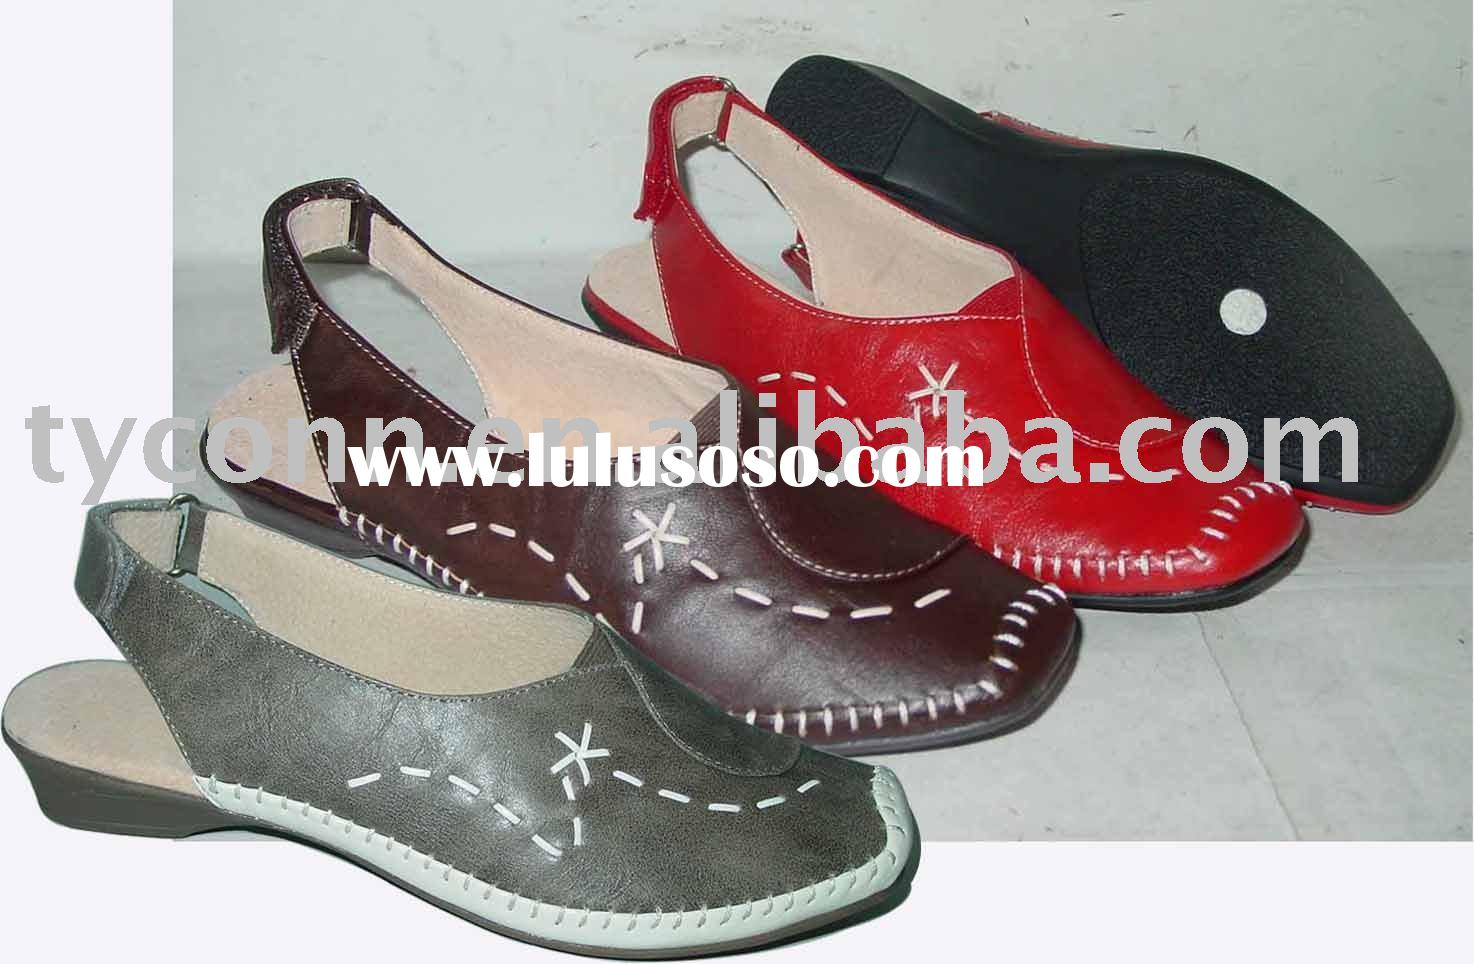 lady comfortable shoes